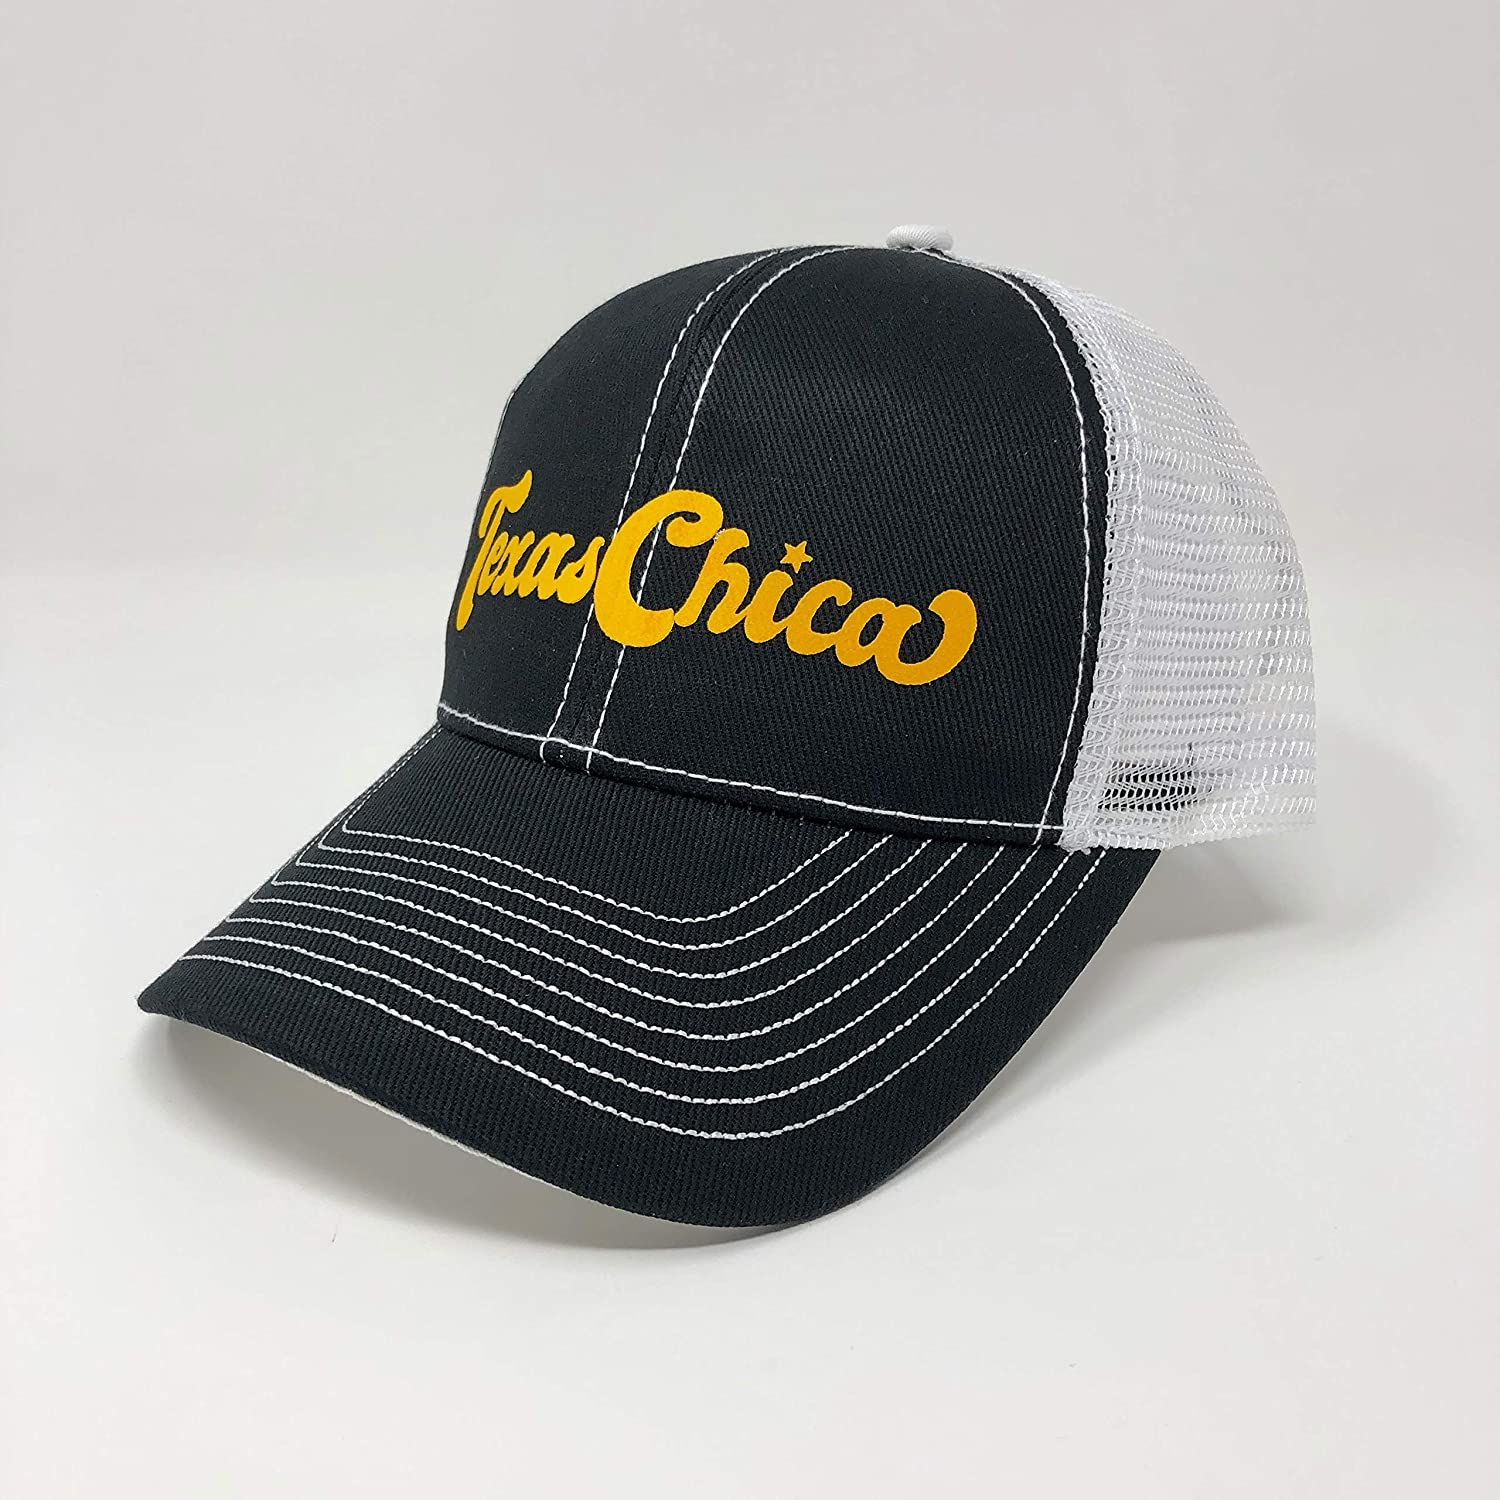 Amazon.com: Trucker Hat - Texas Girl - Texas Chica ...